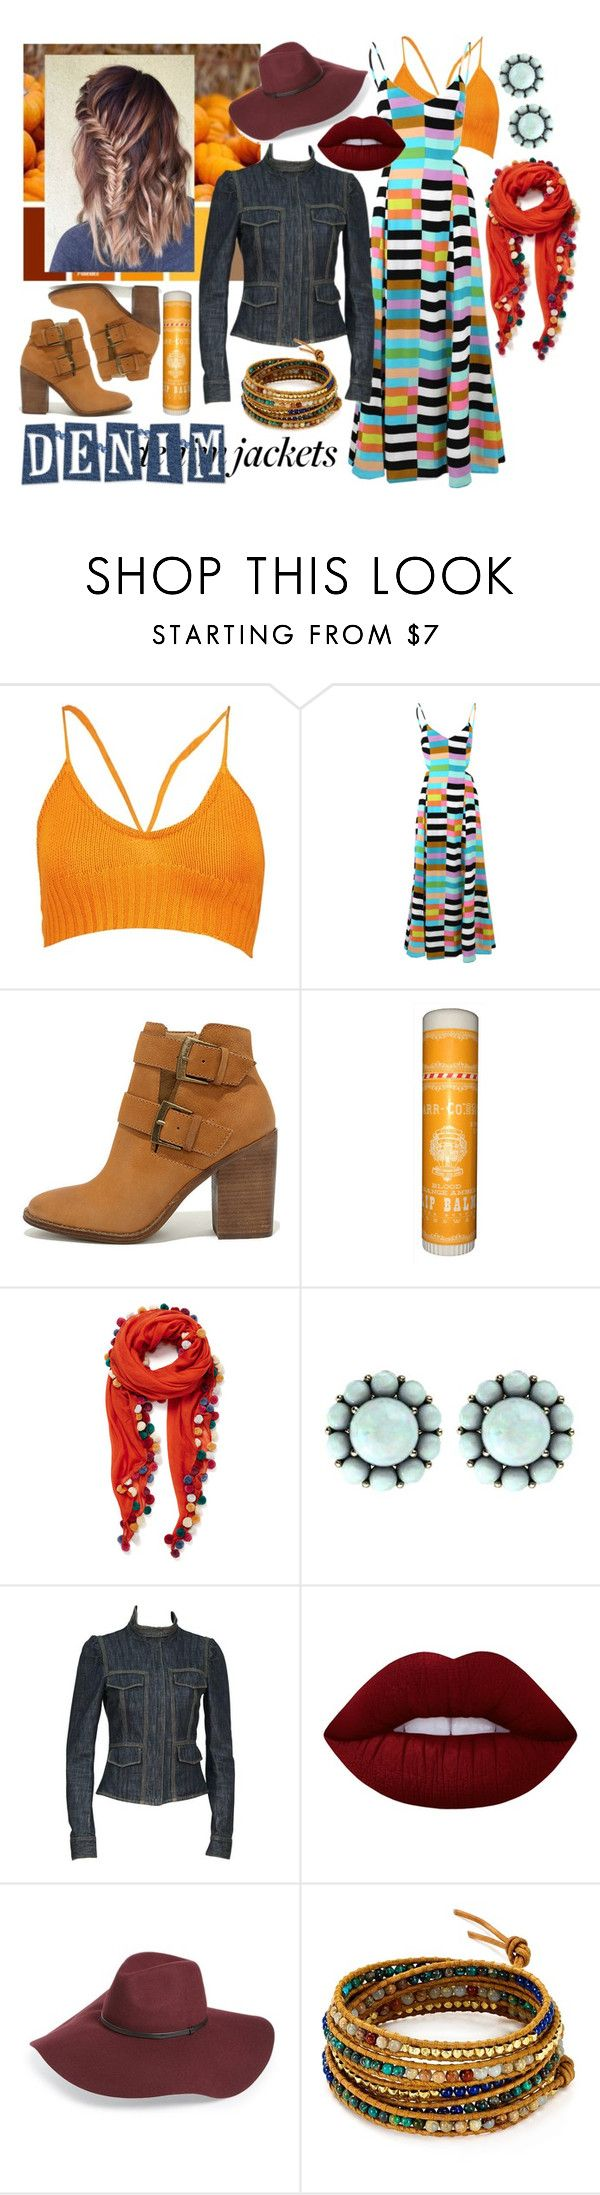 """""""Pumpkin Patch"""" by cnhameister ❤ liked on Polyvore featuring Boohoo, Mara Hoffman, Steve Madden, Jane Carr, Color My Life, Gucci, Lime Crime, Halogen, Chan Luu and contestentry"""